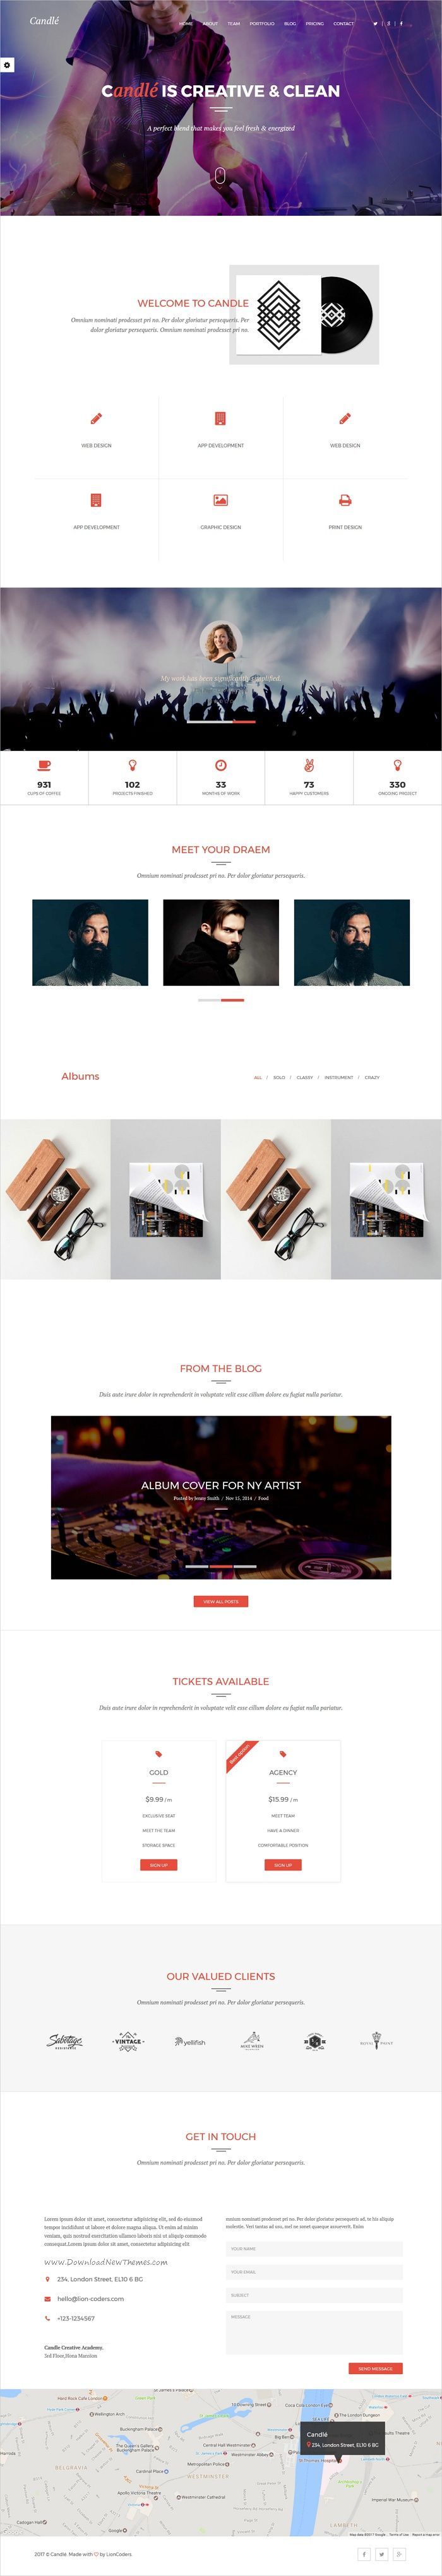 Candle is a premium responsive HTML bootstrap template for #music #events and portfolio showcase websites with multiple homepage layouts download now➩ https://themeforest.net/item/candle-one-multipage-multipurpose-template/19471236?ref=Datasata